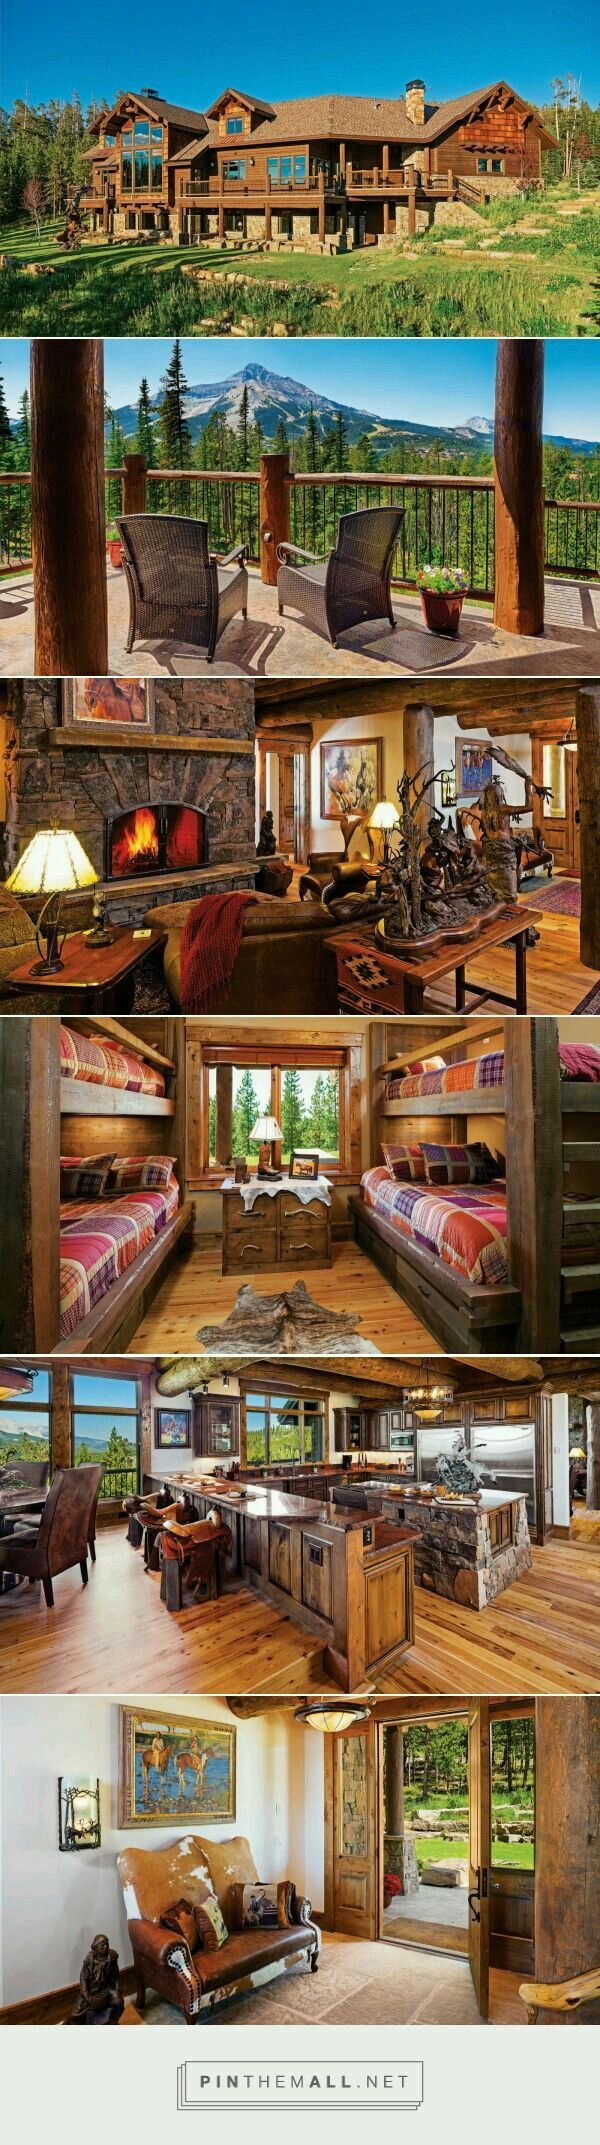 Spectacular cabin home!!!